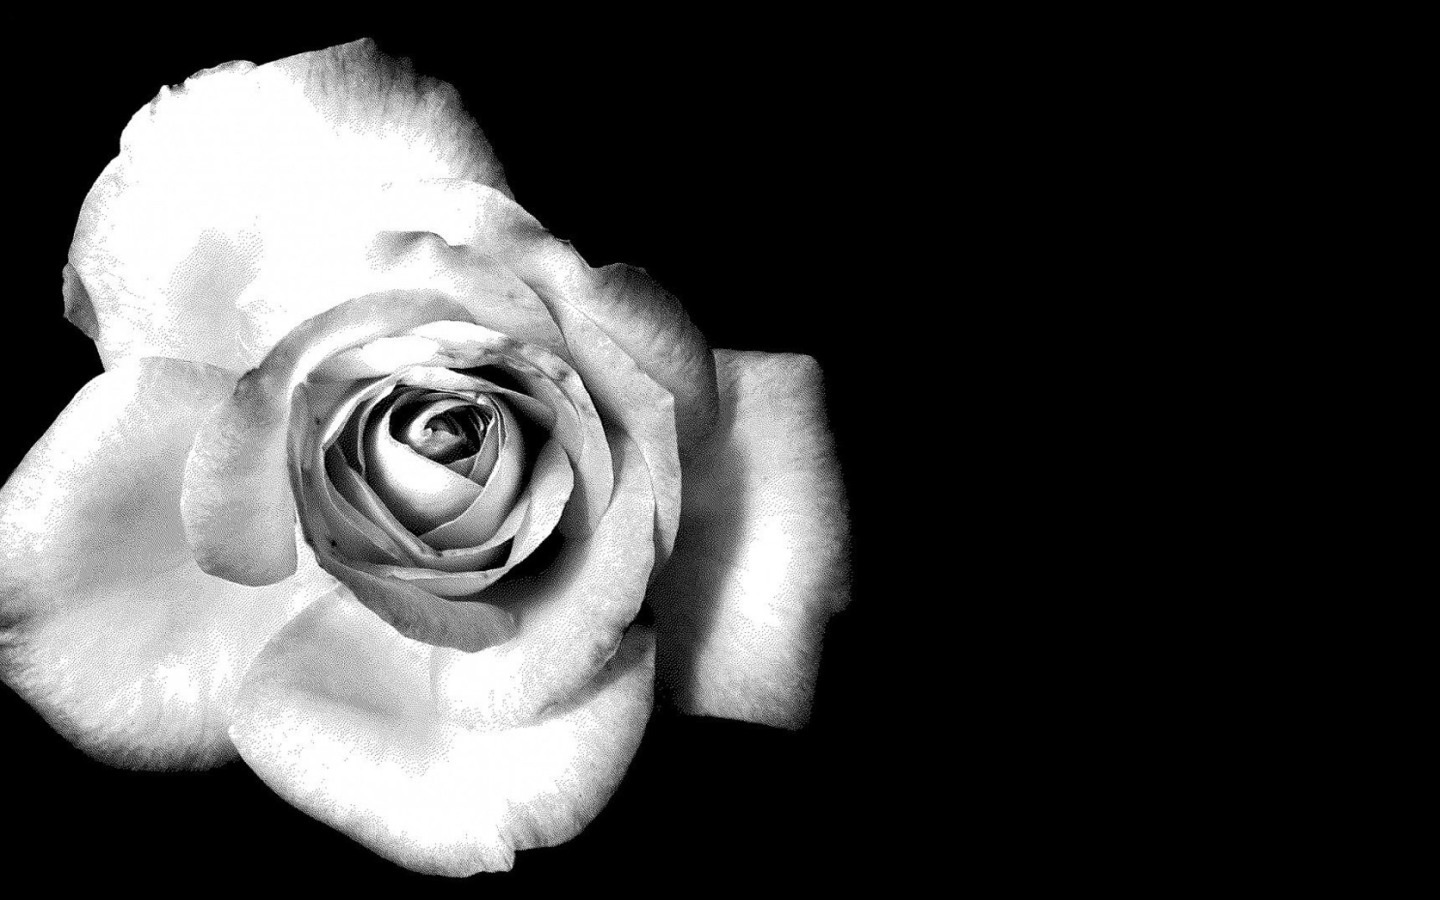 Previous Image Go Back To Black And White Flower Wallpaper HD For